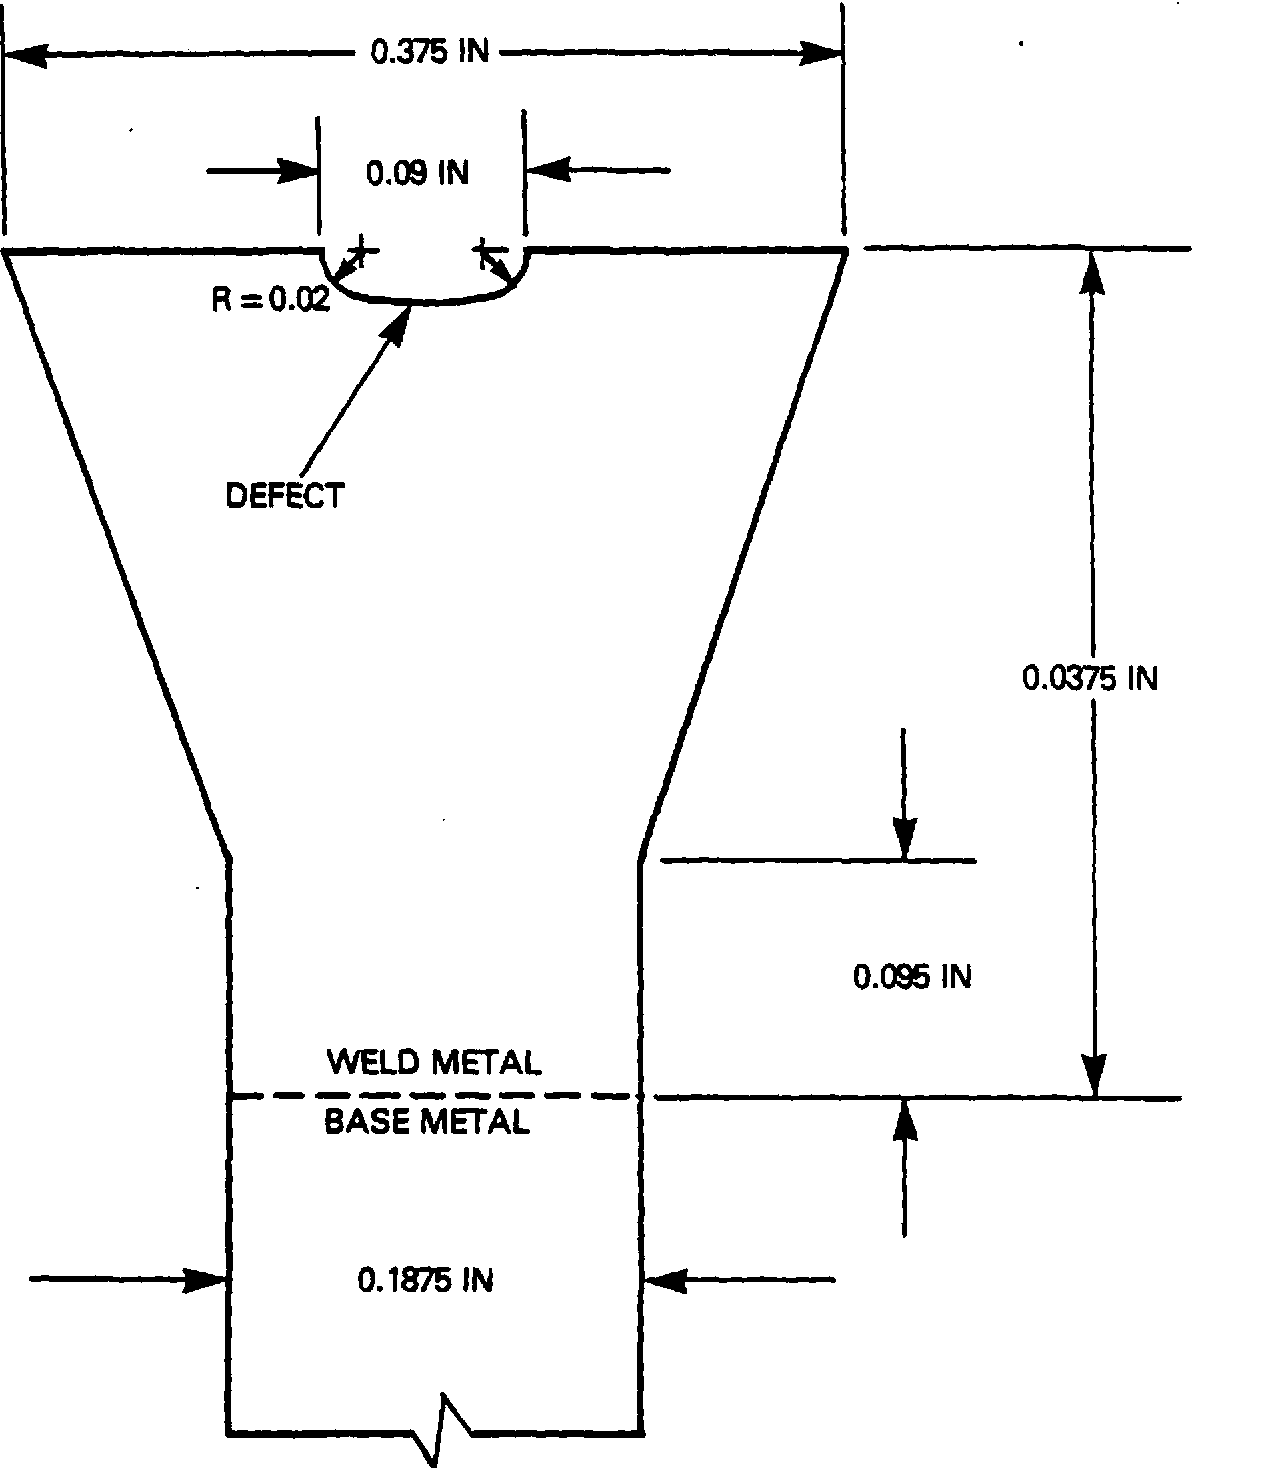 hight resolution of figure 1 butt weld geometry and defect geometry